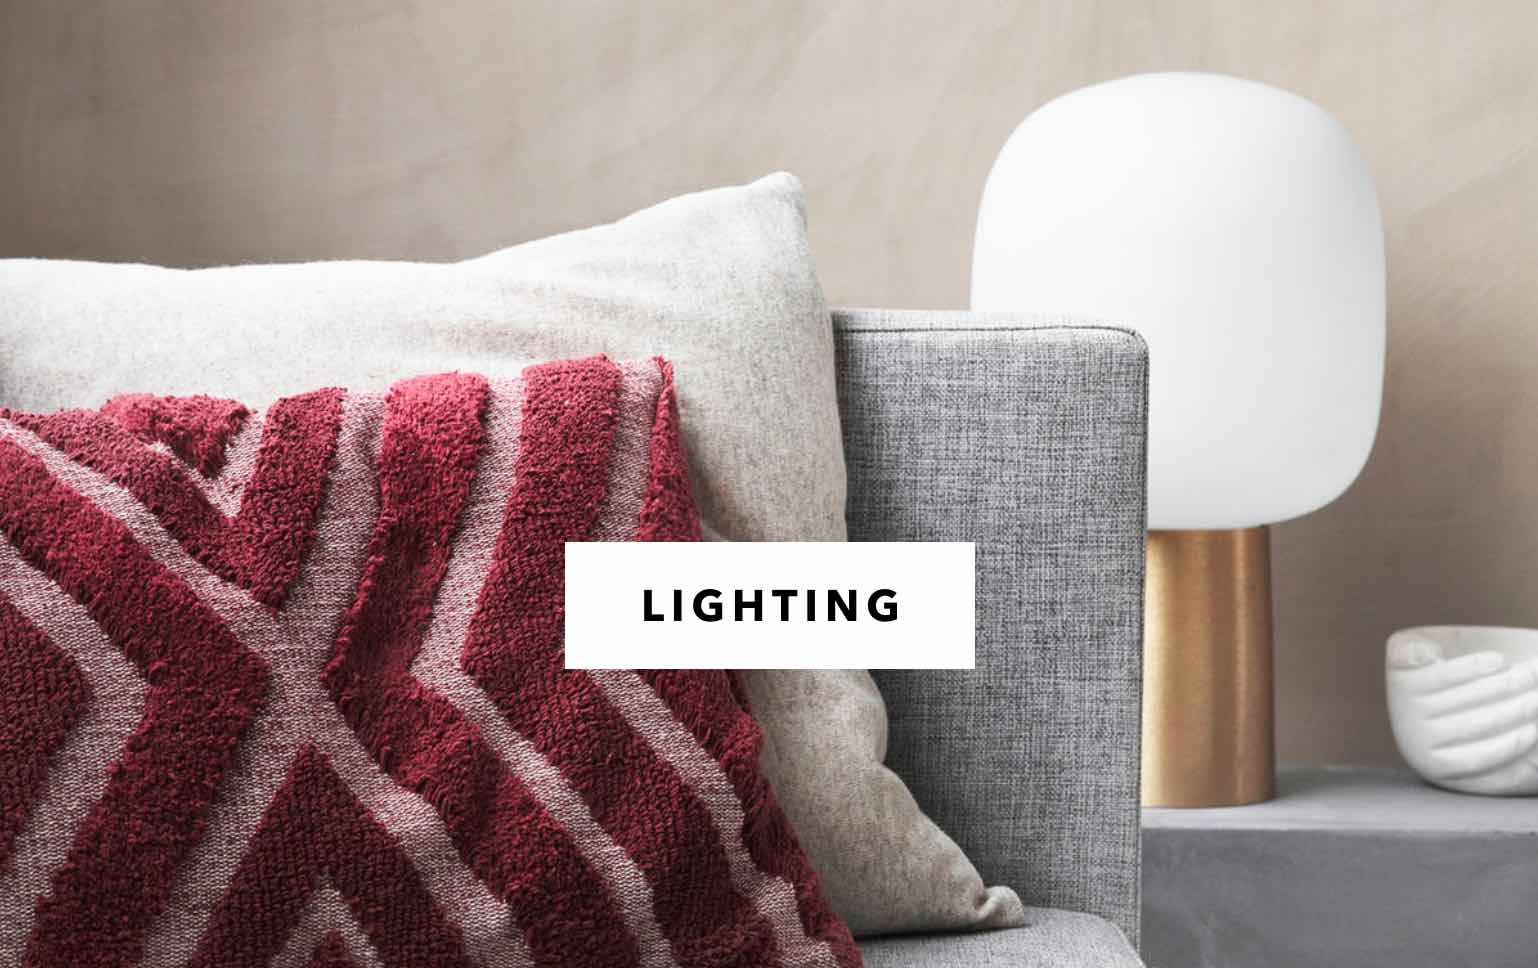 stylodeco.com-june-2018-lighting-lamps.jpg